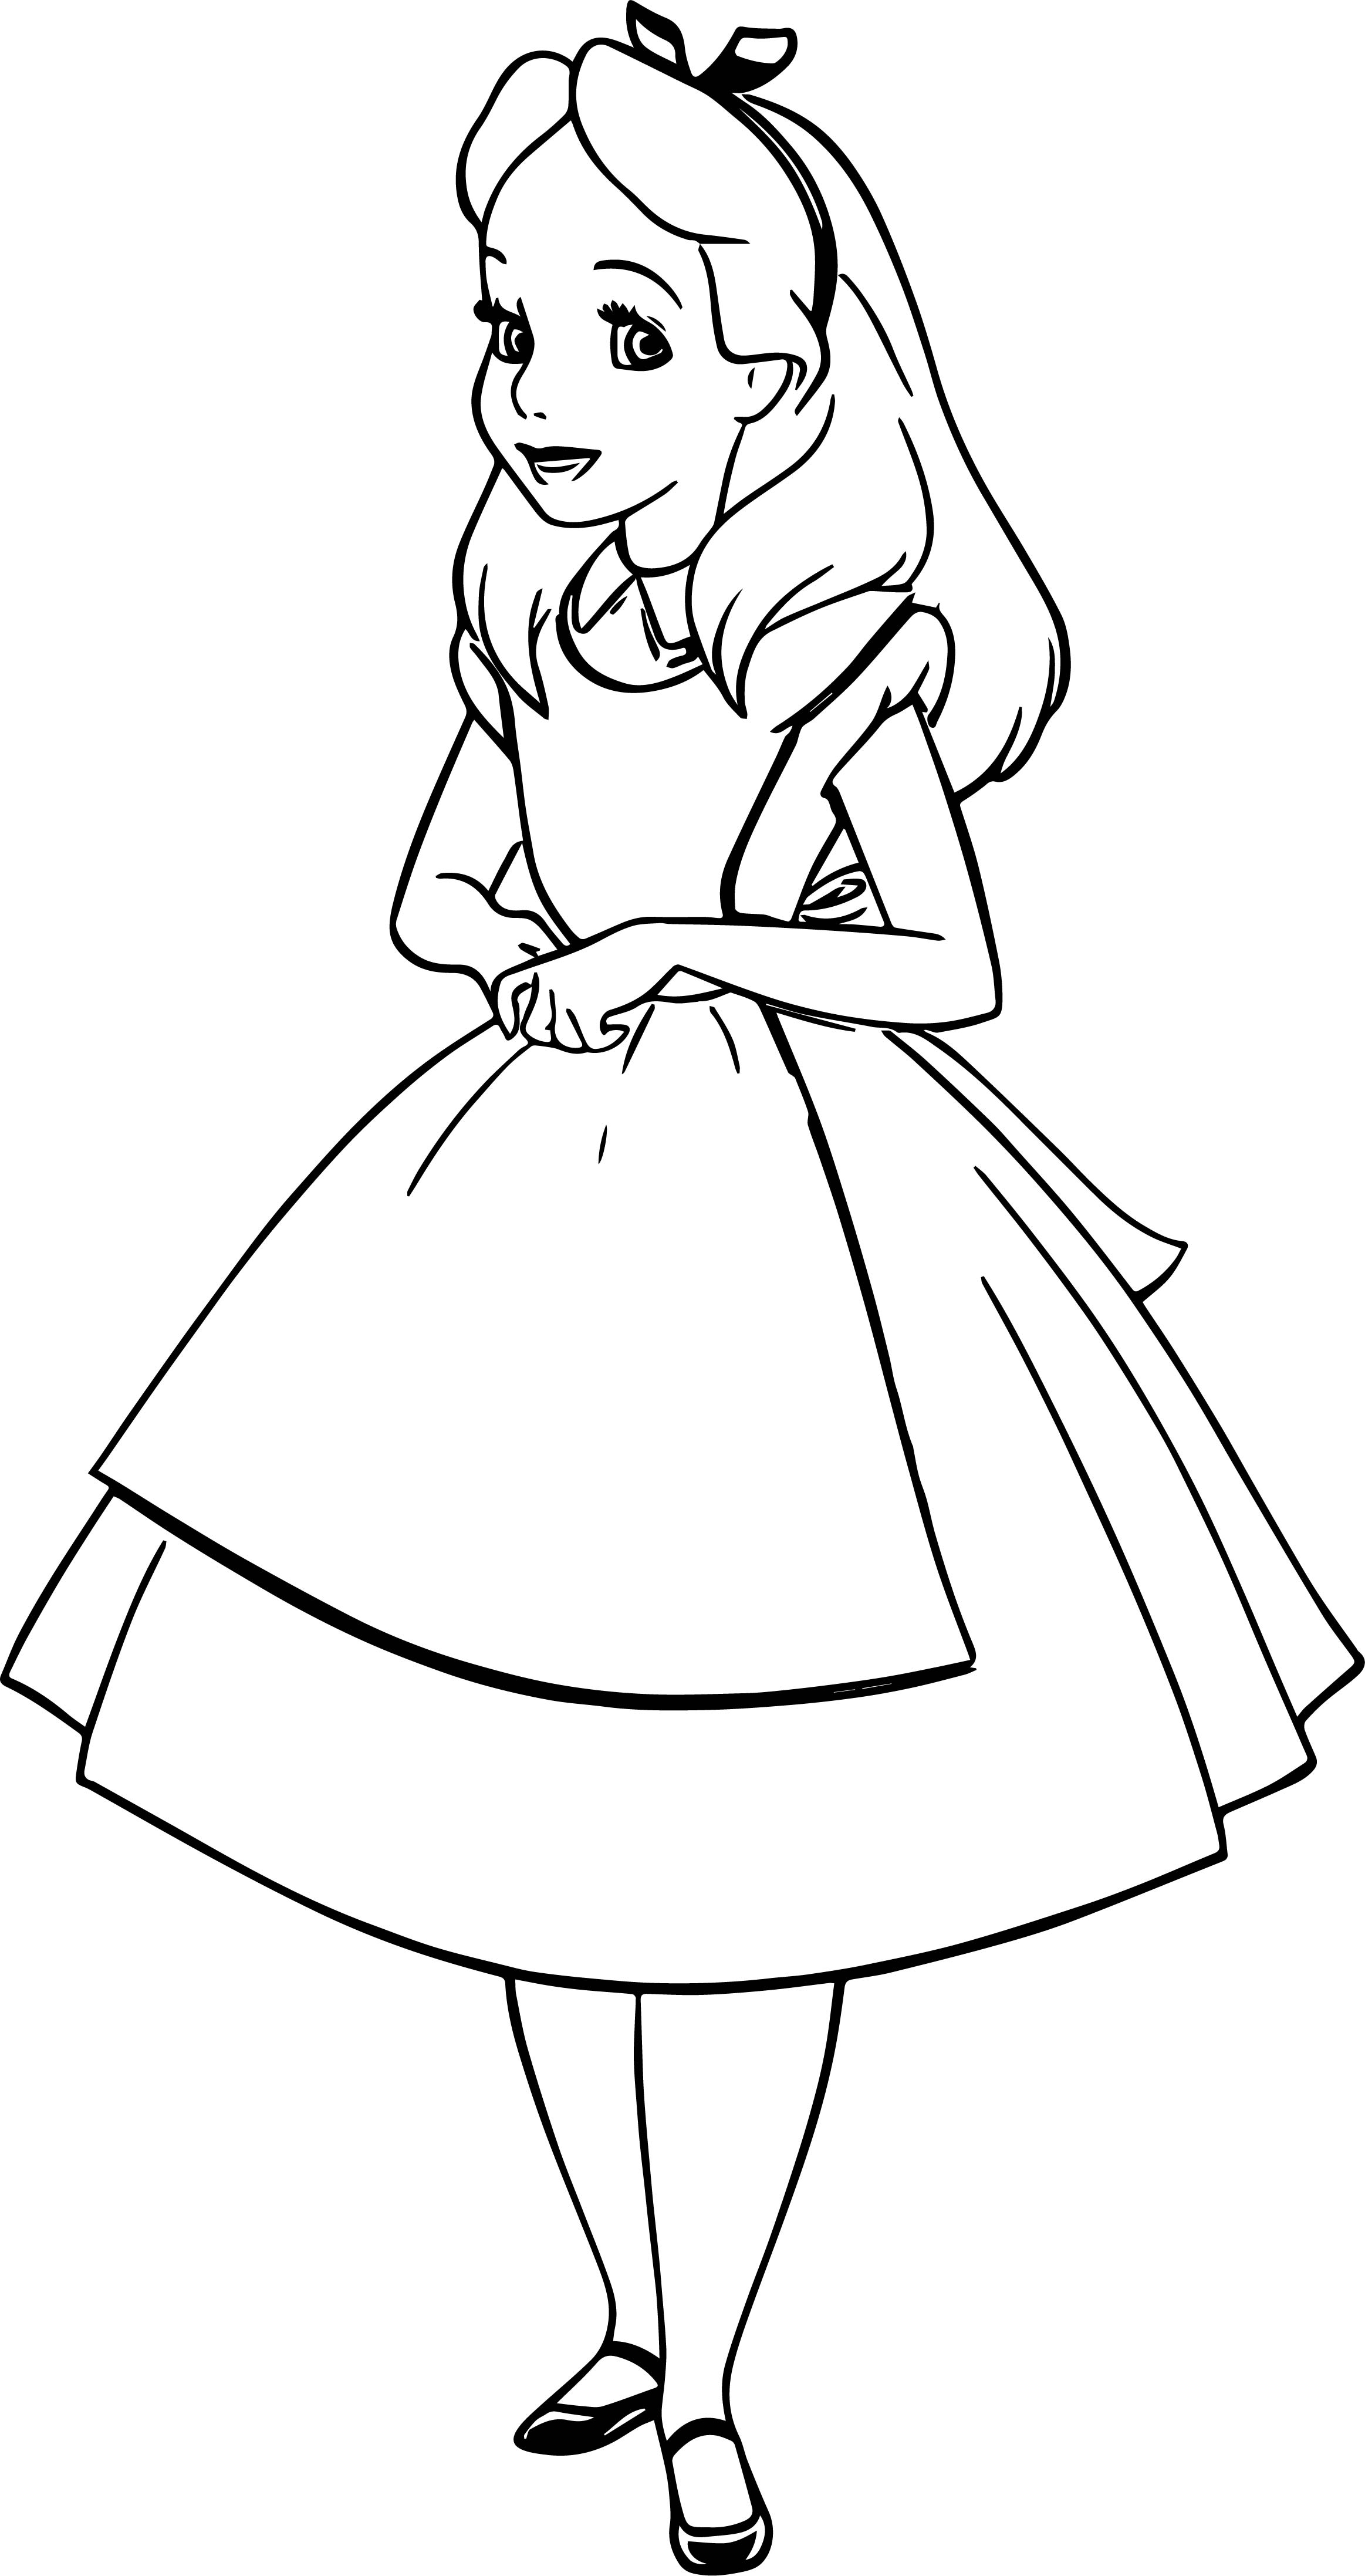 happy alice in the wonderland coloring page wecoloringpage